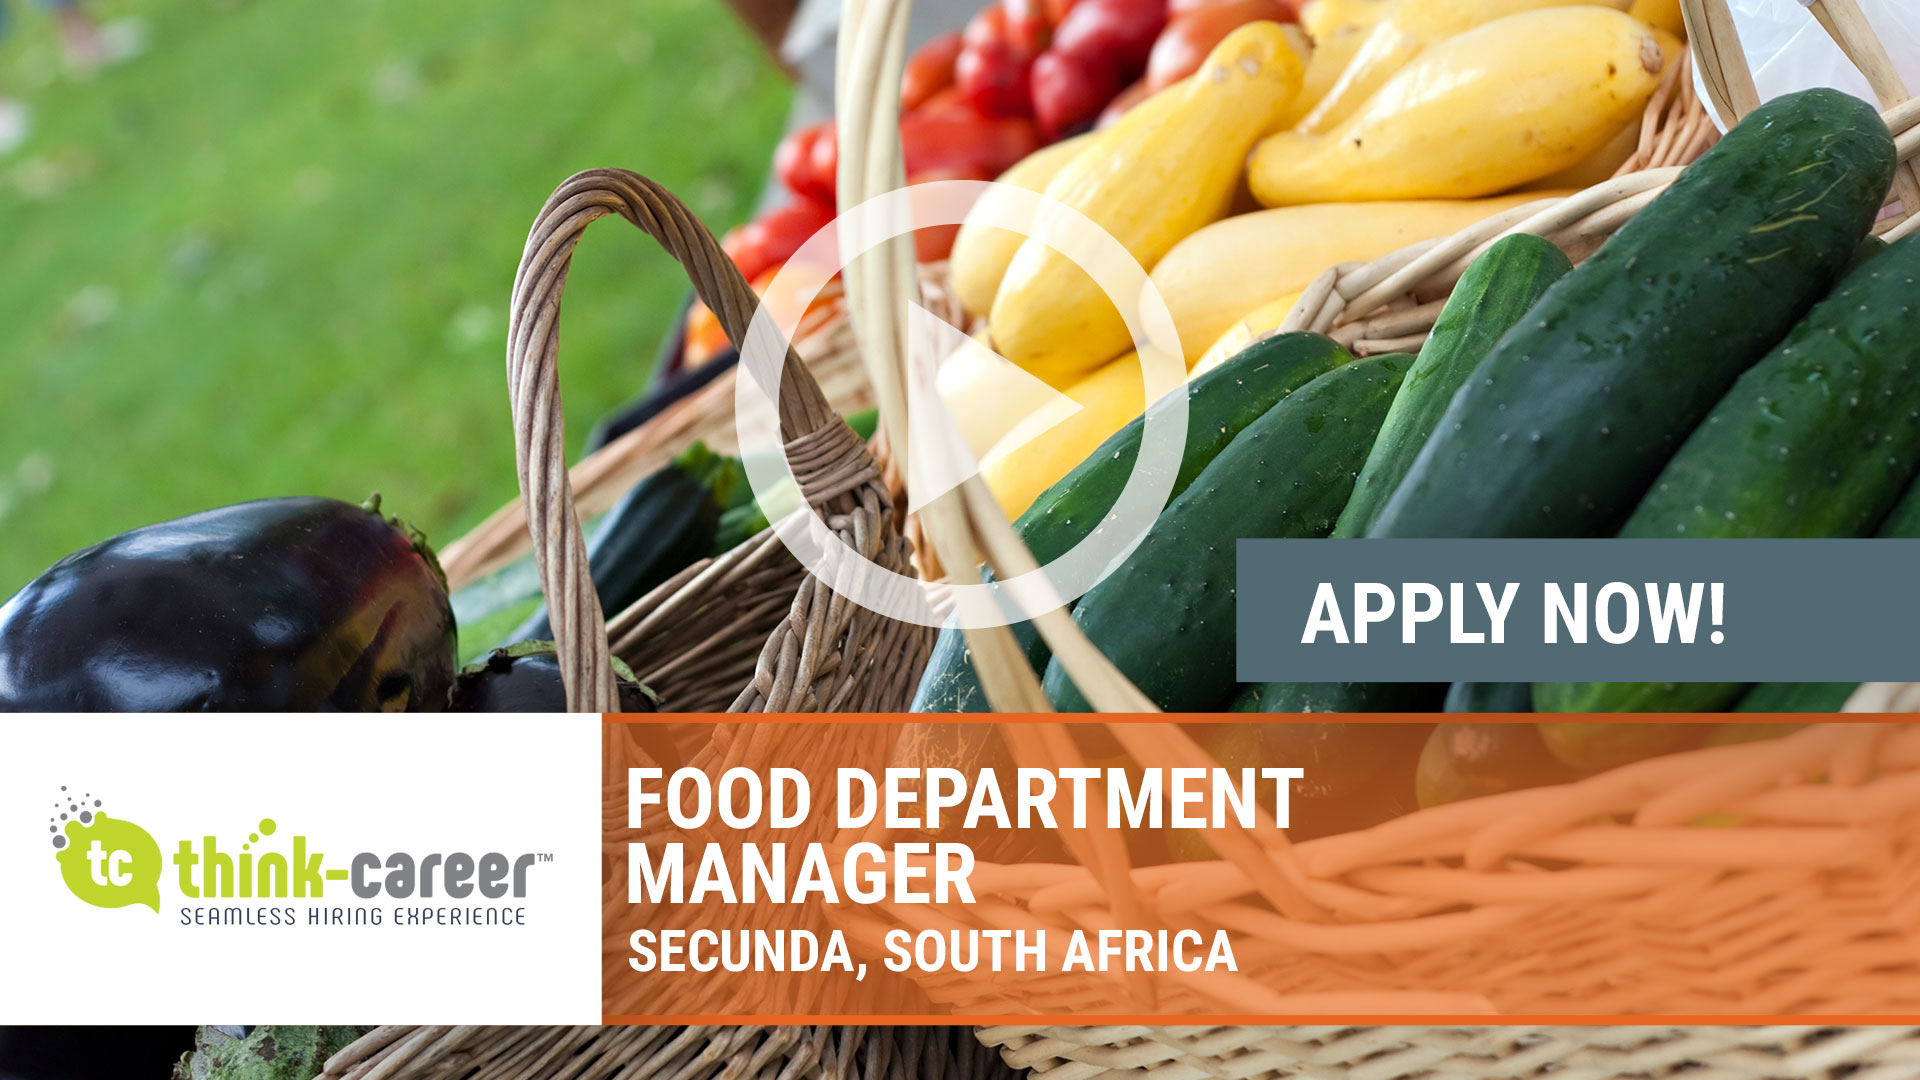 Watch our careers video for available job opening Food Department Manager in Secunda, South Africa